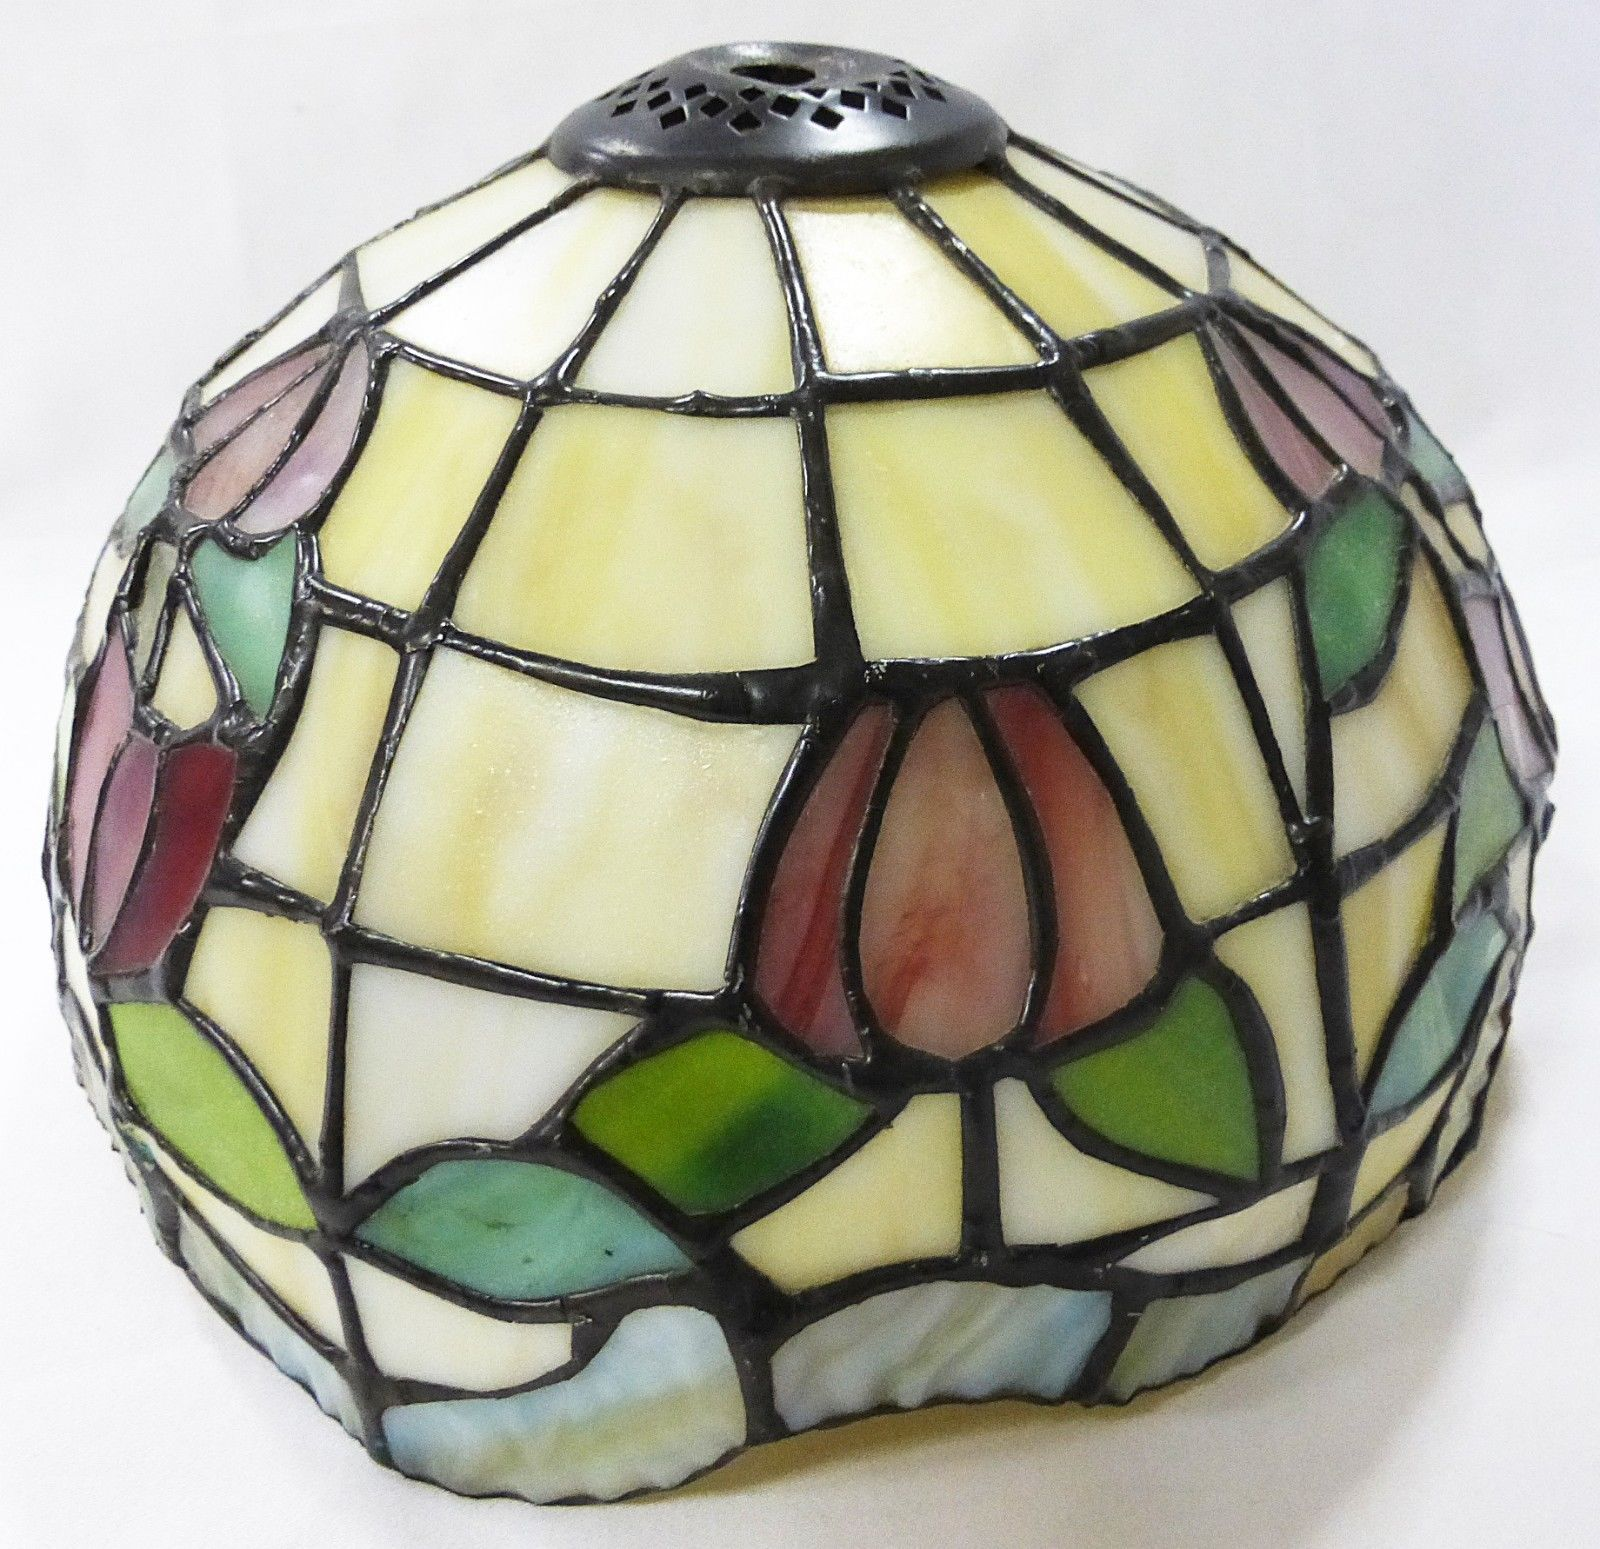 tiffany style lamp shade leaded stained glass heavy vintage shades. Black Bedroom Furniture Sets. Home Design Ideas